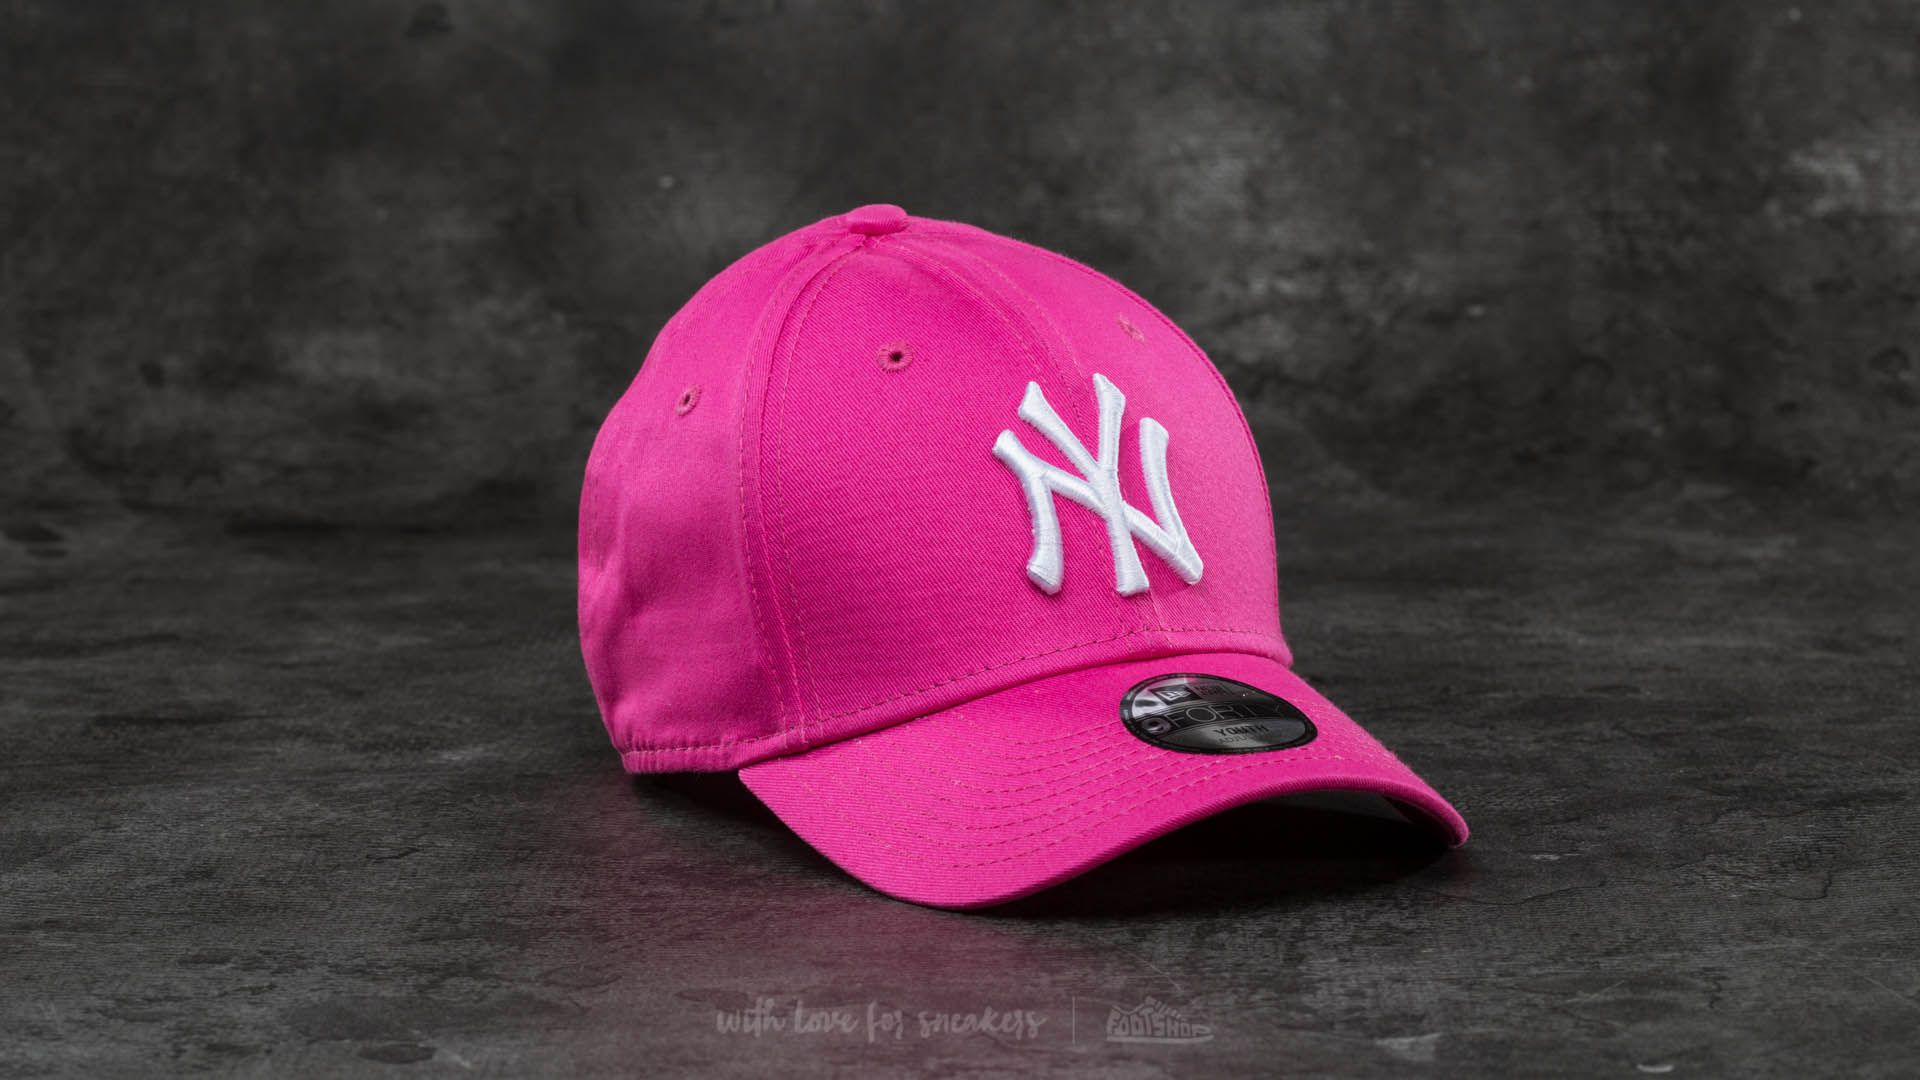 New Era 9Forty Adjustable MLB League New York Yankees Cap Pink  White  nagyszerű árakon 6 17b8cd250d